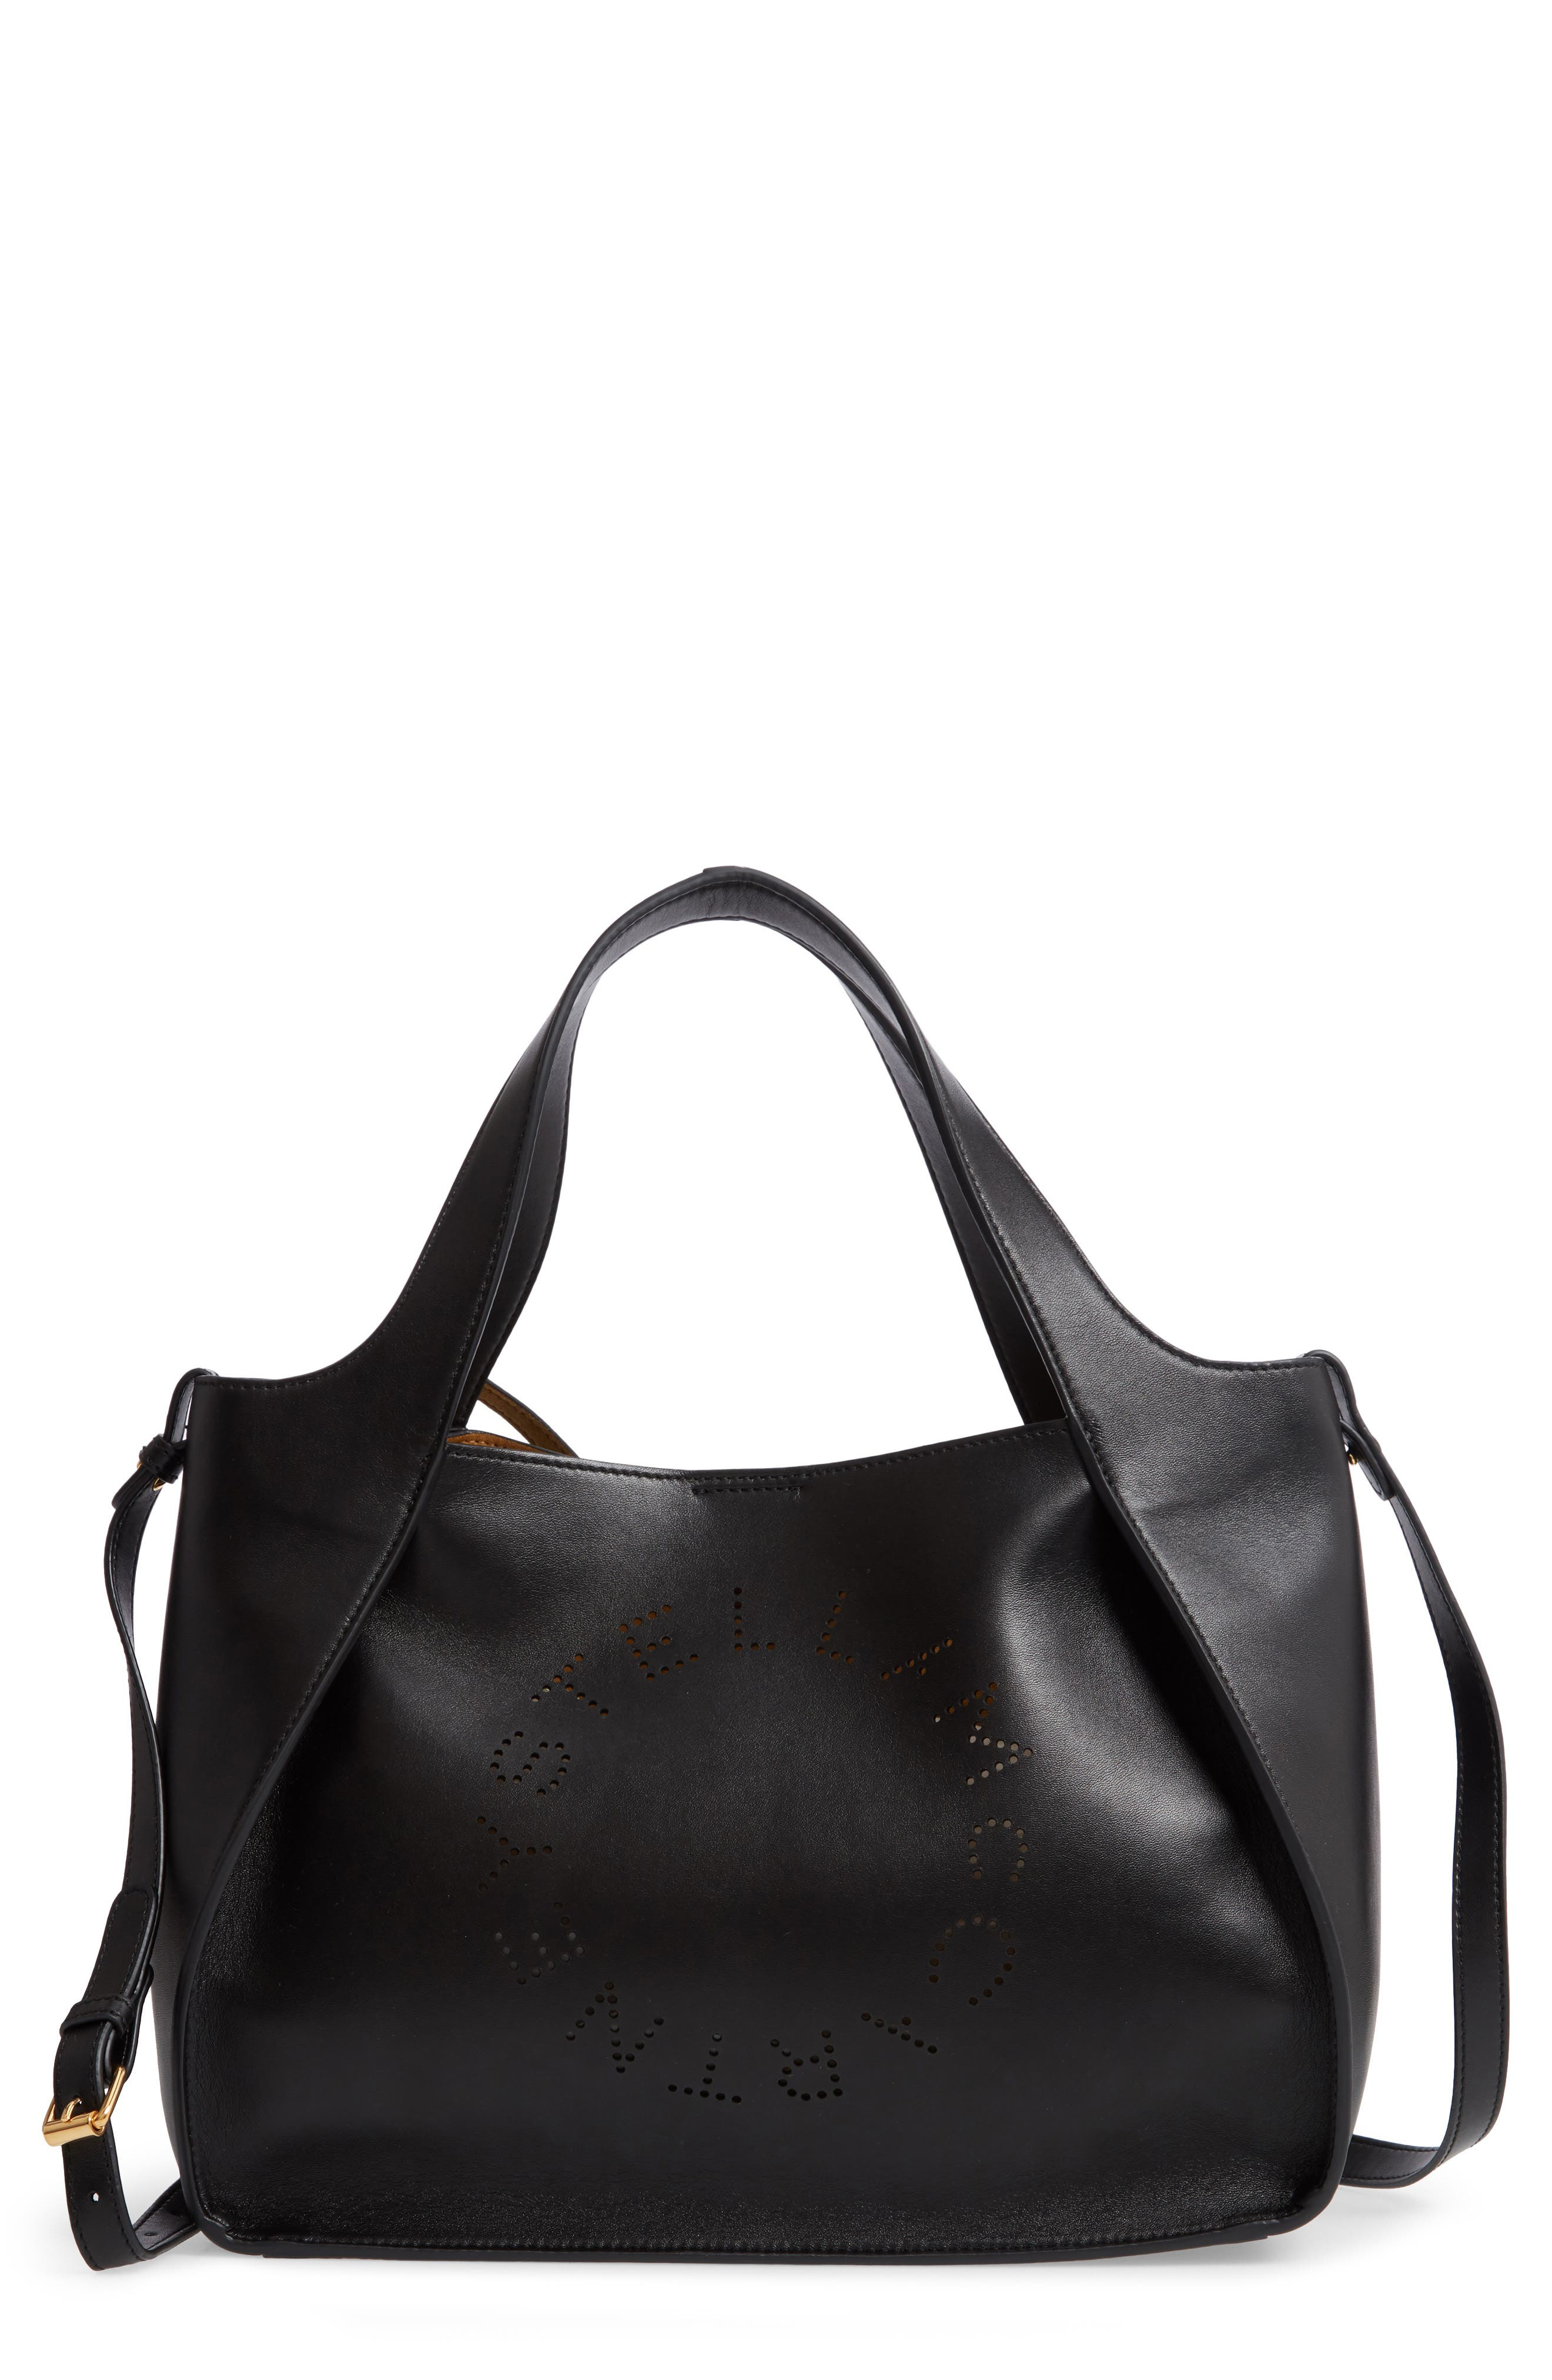 STELLA MCCARTNEY, Perforated Logo Faux Leather Satchel, Main thumbnail 1, color, BLACK